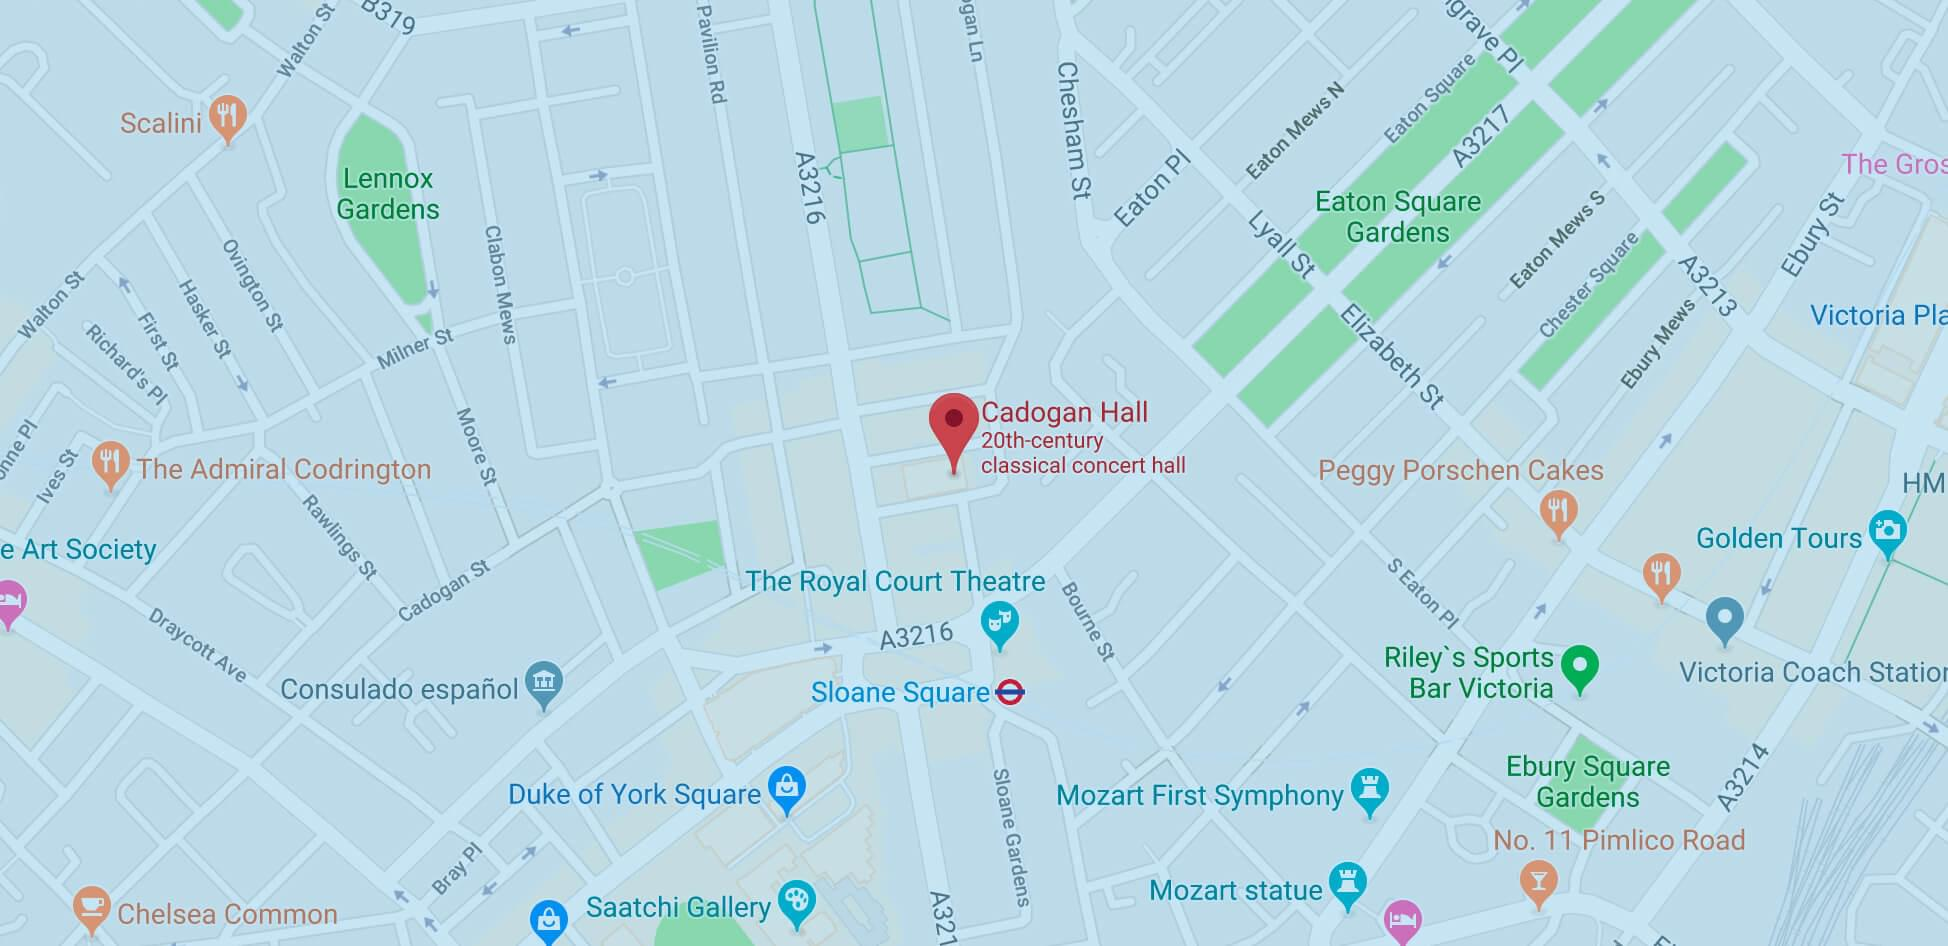 Cadogan Hall's map view